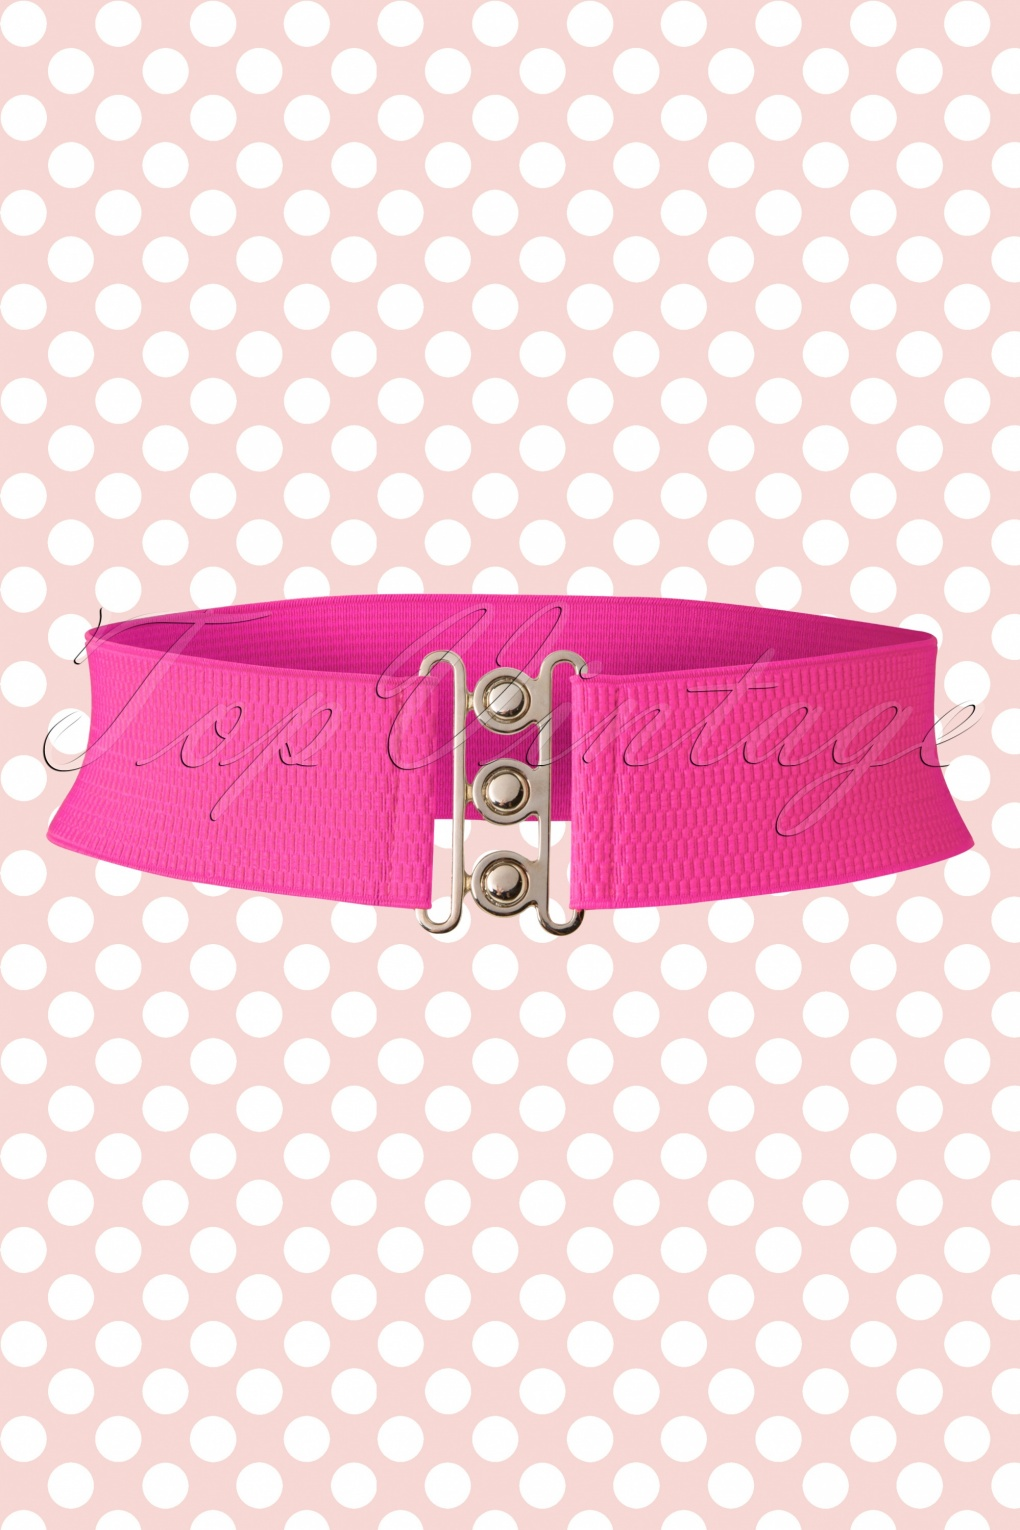 Vintage Wide Belts, Cinch Belts 50s Lauren Retro Stretch Belt in Hot Pink £7.12 AT vintagedancer.com